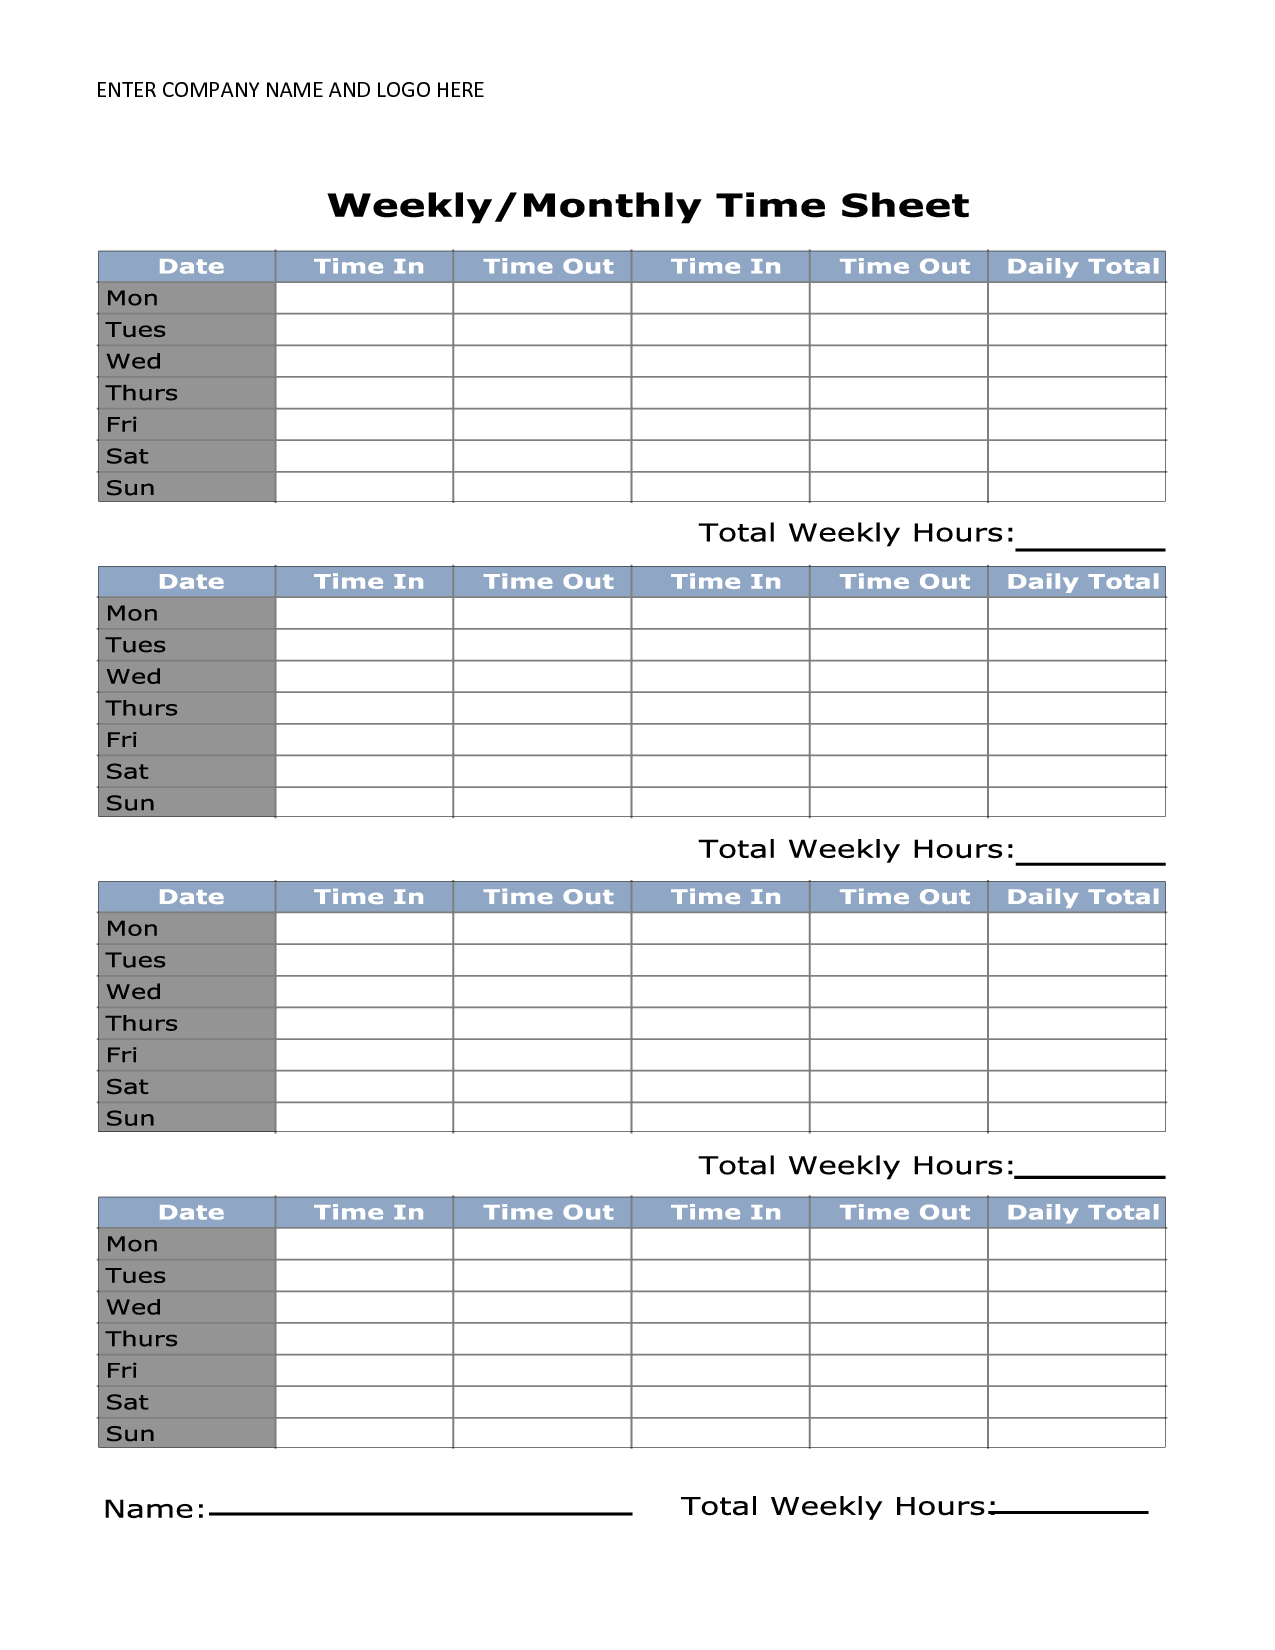 Free Printable Monthly Time Sheets | Time Sheet | Timesheet Template - Free Printable Time Sheets